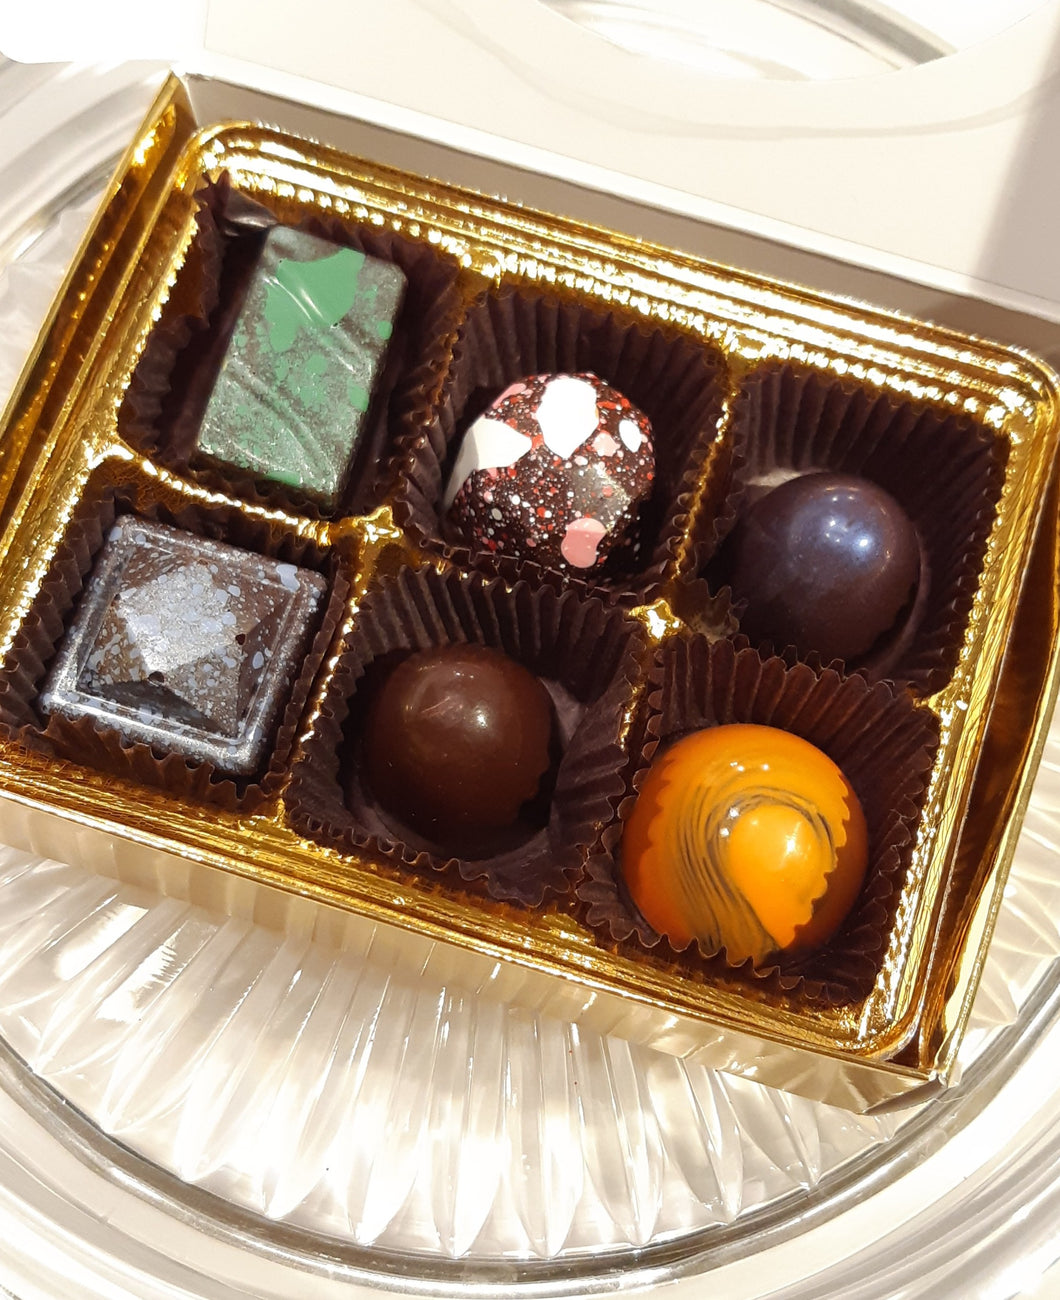 fine chocolates  Included in this selection are mint, vanilla caramel, brandy mango, plain, and orange. Culinary Creations by Mark Beacock, Brockville, ON